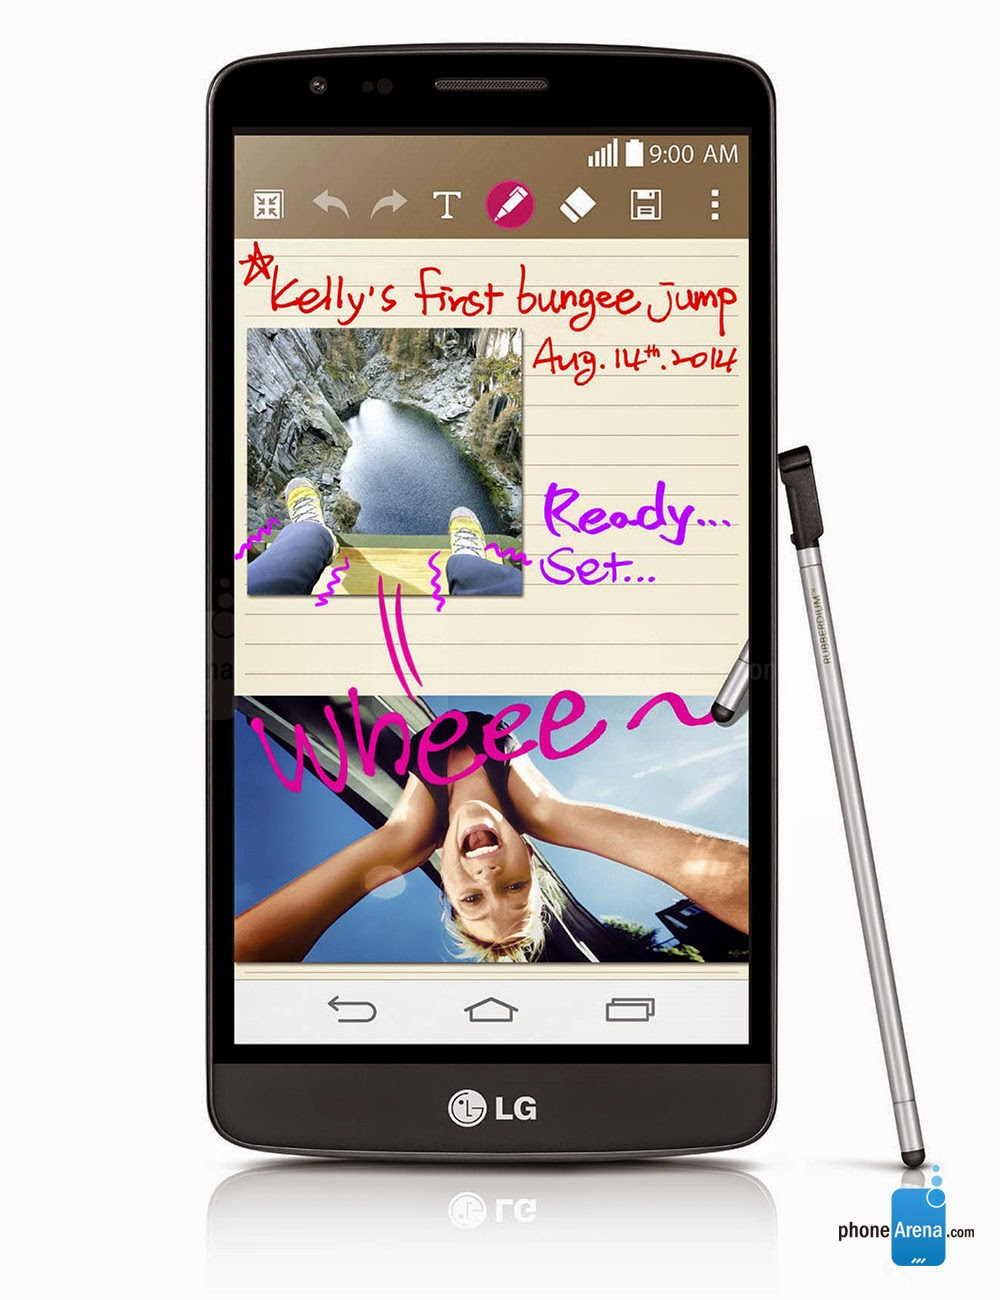 LG G3 Stylus review, new LG G3 Stylus, selfie camera, new android smartphone, Android KitKat, Android 5, Android Lollypop